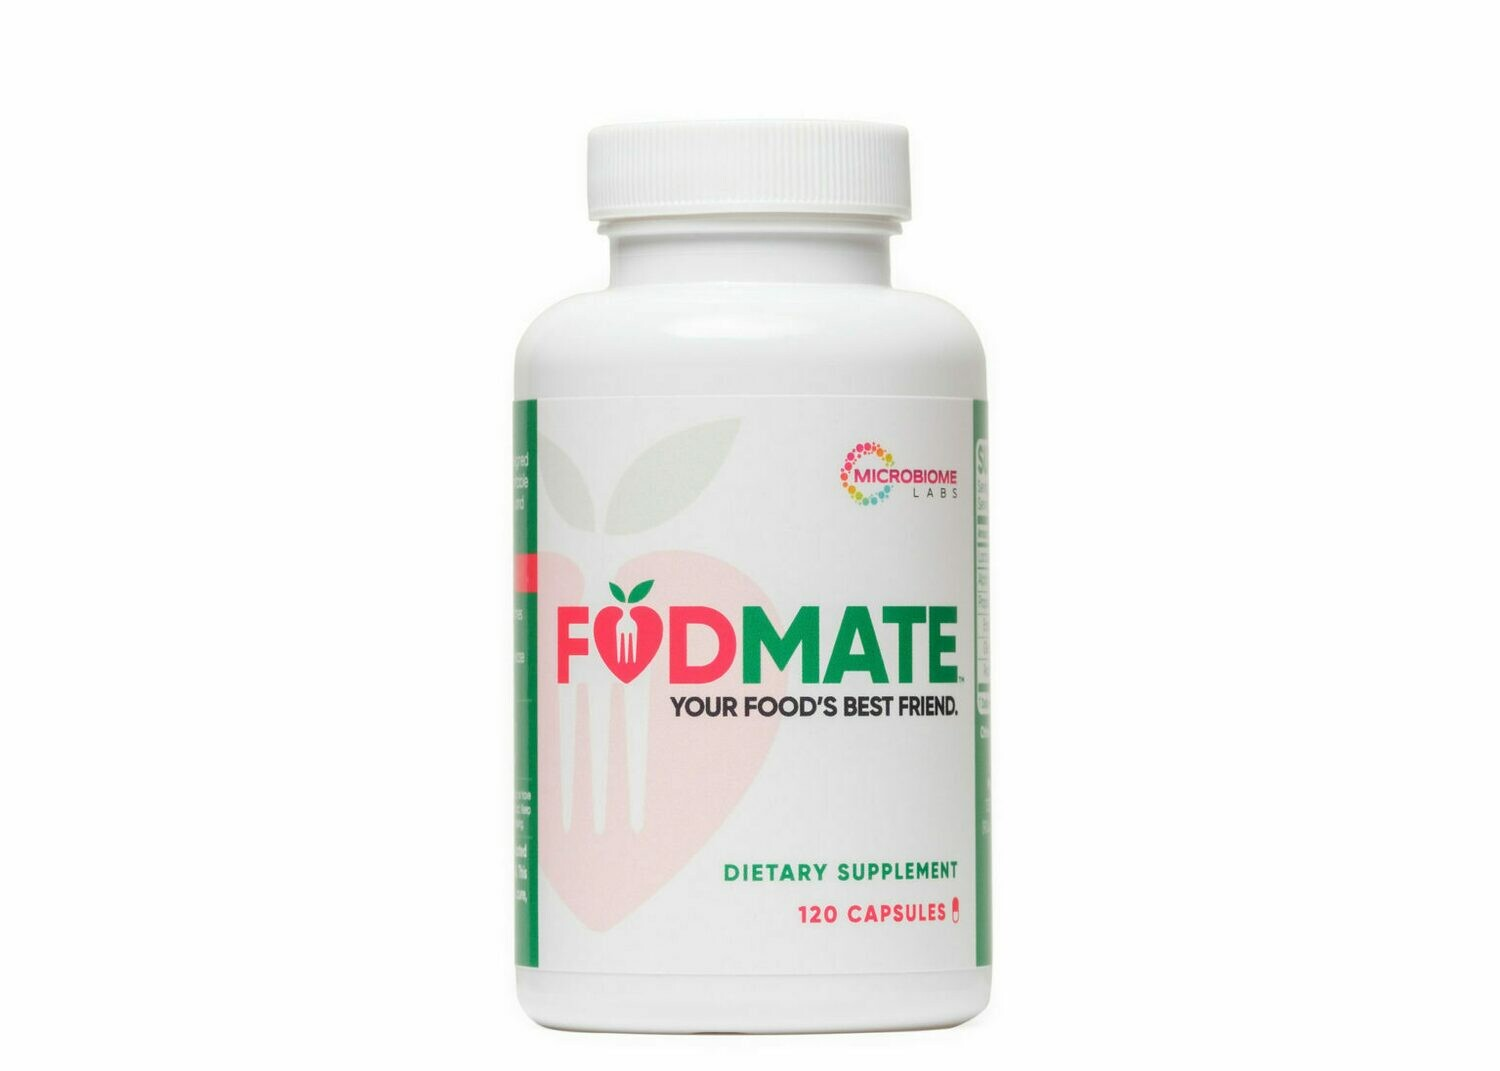 FODMATE 100 capsules Microbiome Labs